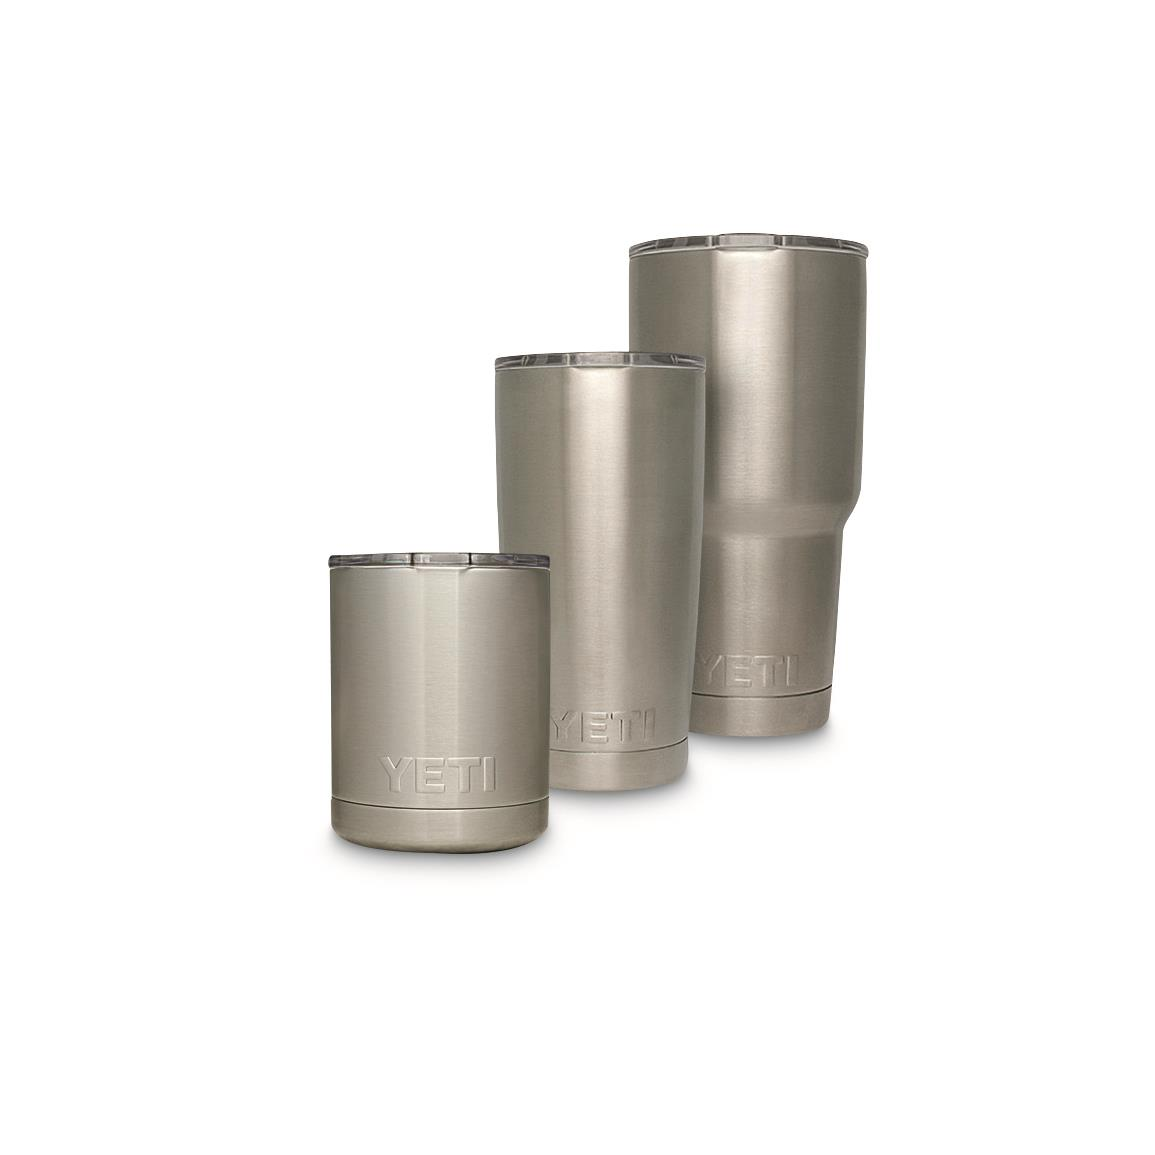 YETI Rambler Stainless Steel Tumblers Collection Lineup